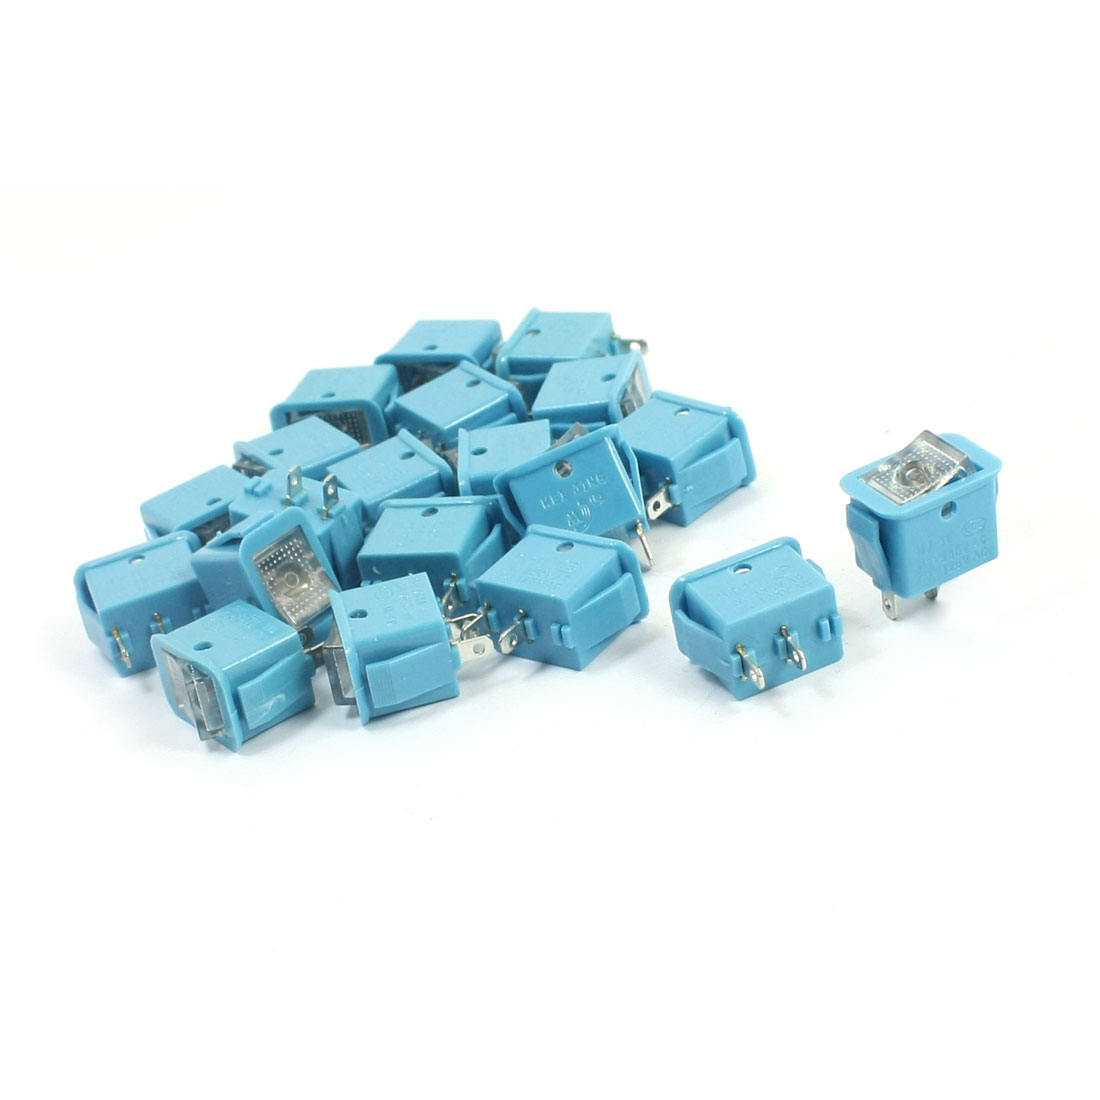 20PCS Blue SPST 2 Positions Self-Locking Panel Mount Rocker Switches